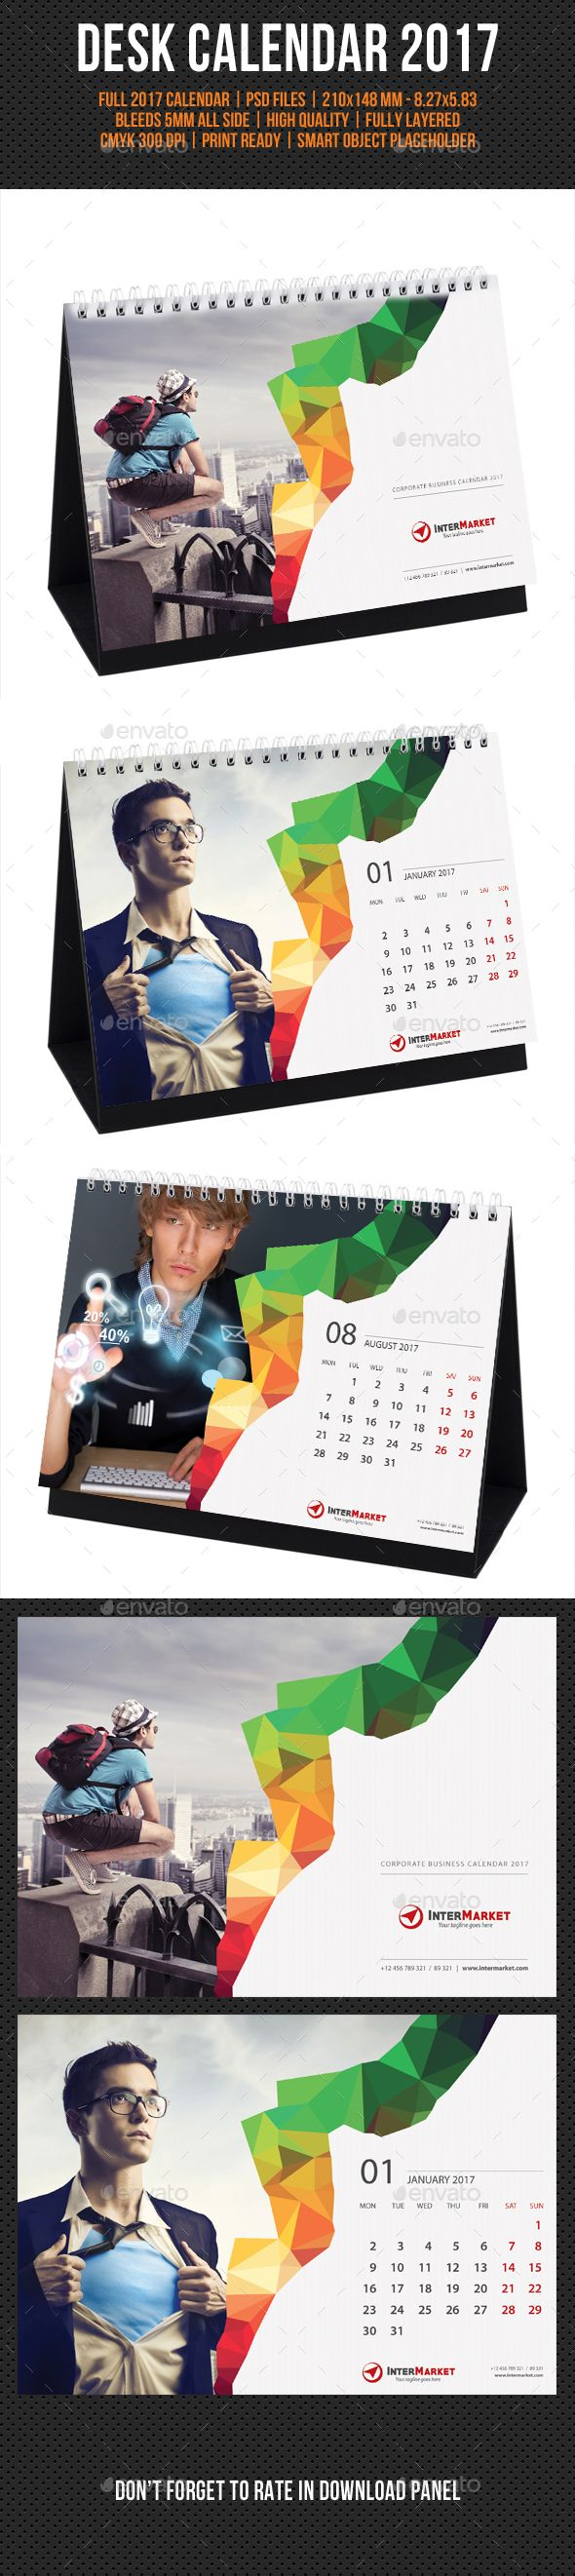 Corporate Desk Calendar Design Template 2017 V04 - Calendars Template PSD. Download here: https://graphicriver.net/item/corporate-desk-calendar-2017-v04/16966251?s_rank=7&ref=yinkira